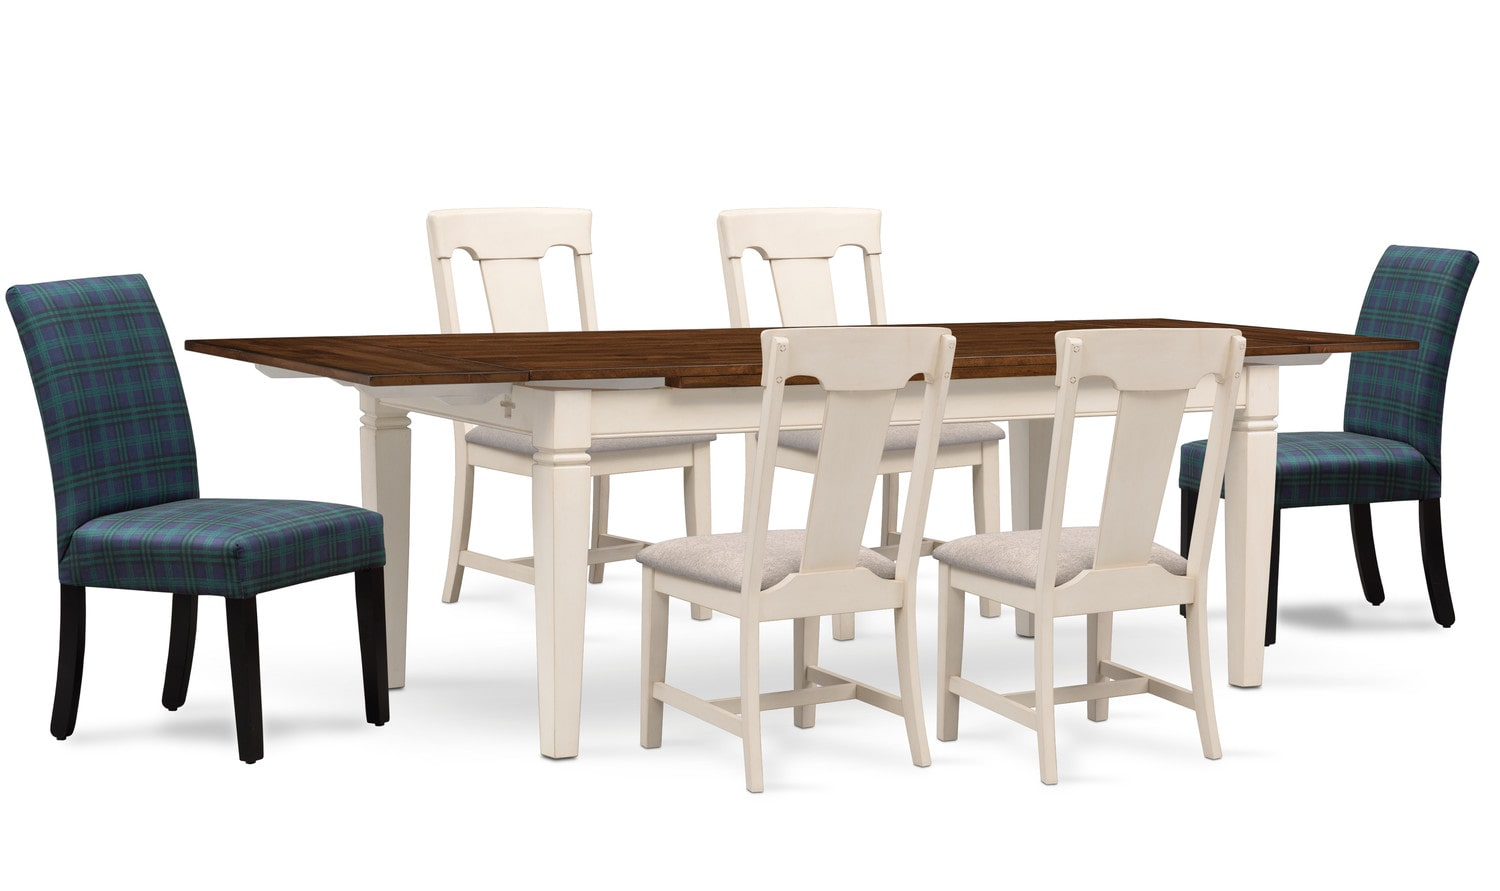 Dining Room Furniture - Adler Dining Table, 4 Side Chairs, and 2 Upholstered Side Chairs